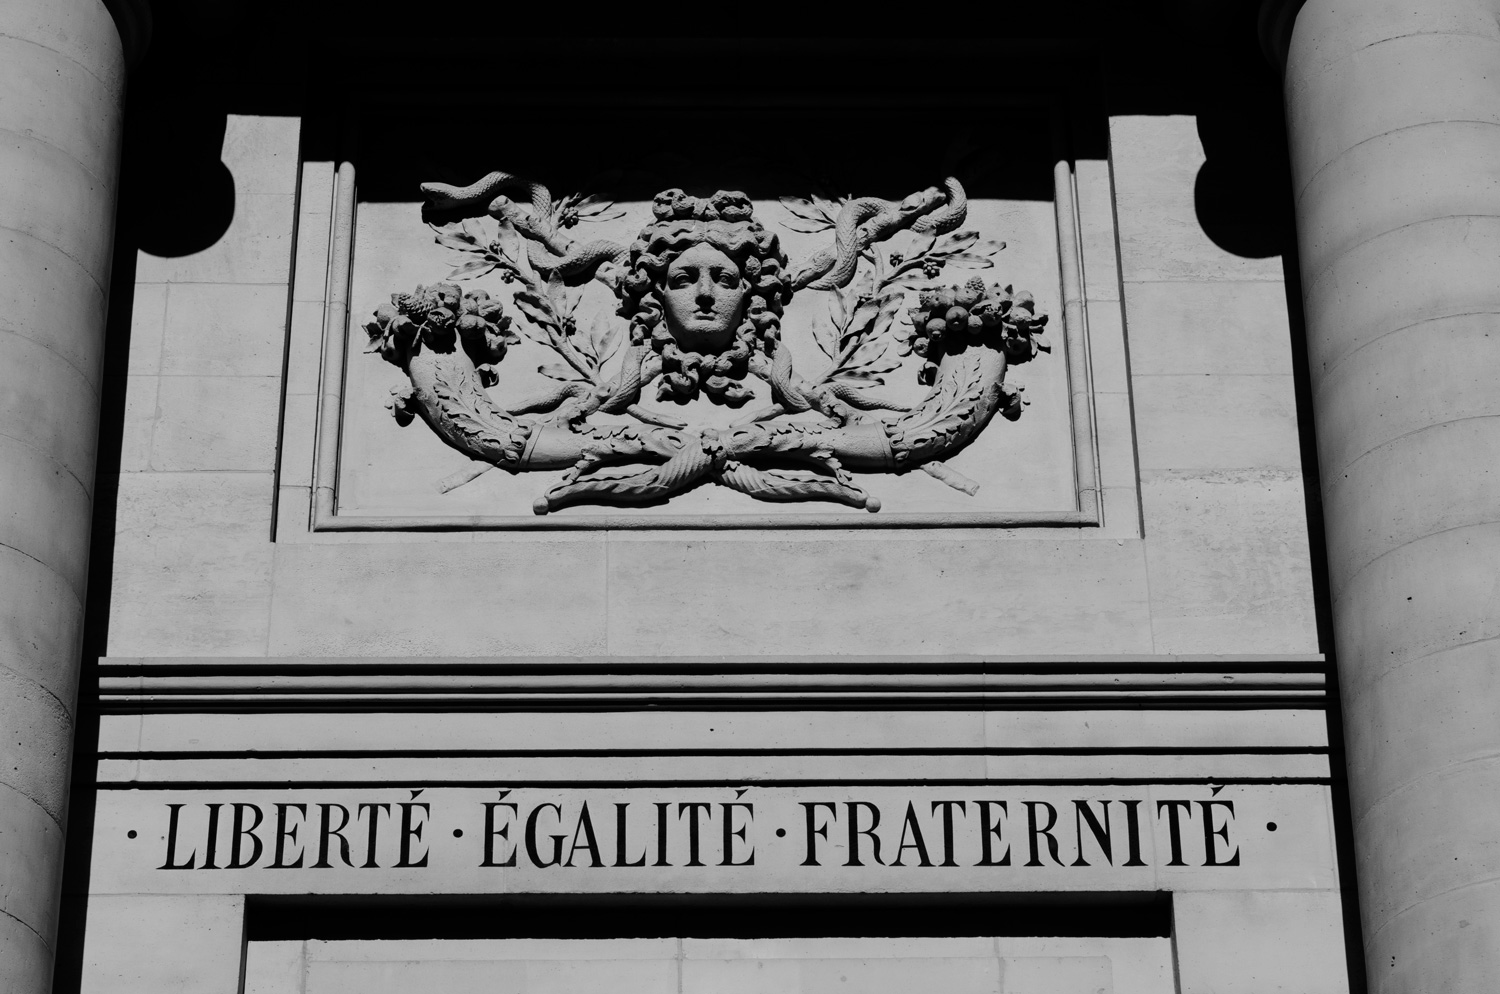 The facade of the Paris Descartes University